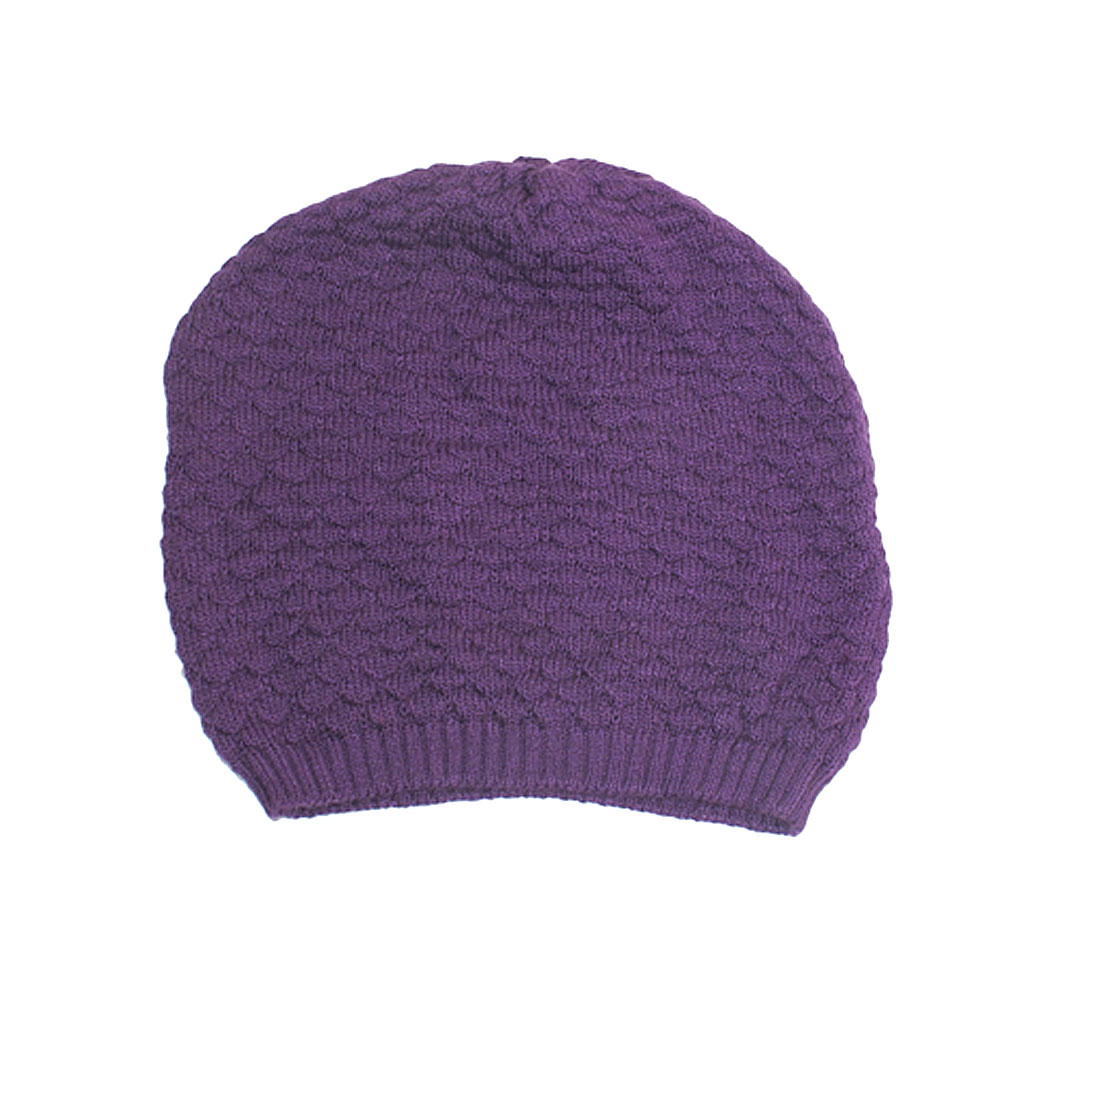 Womens Purple Fish Scales Texture Winter Warm Soft Knit Beanie Caps